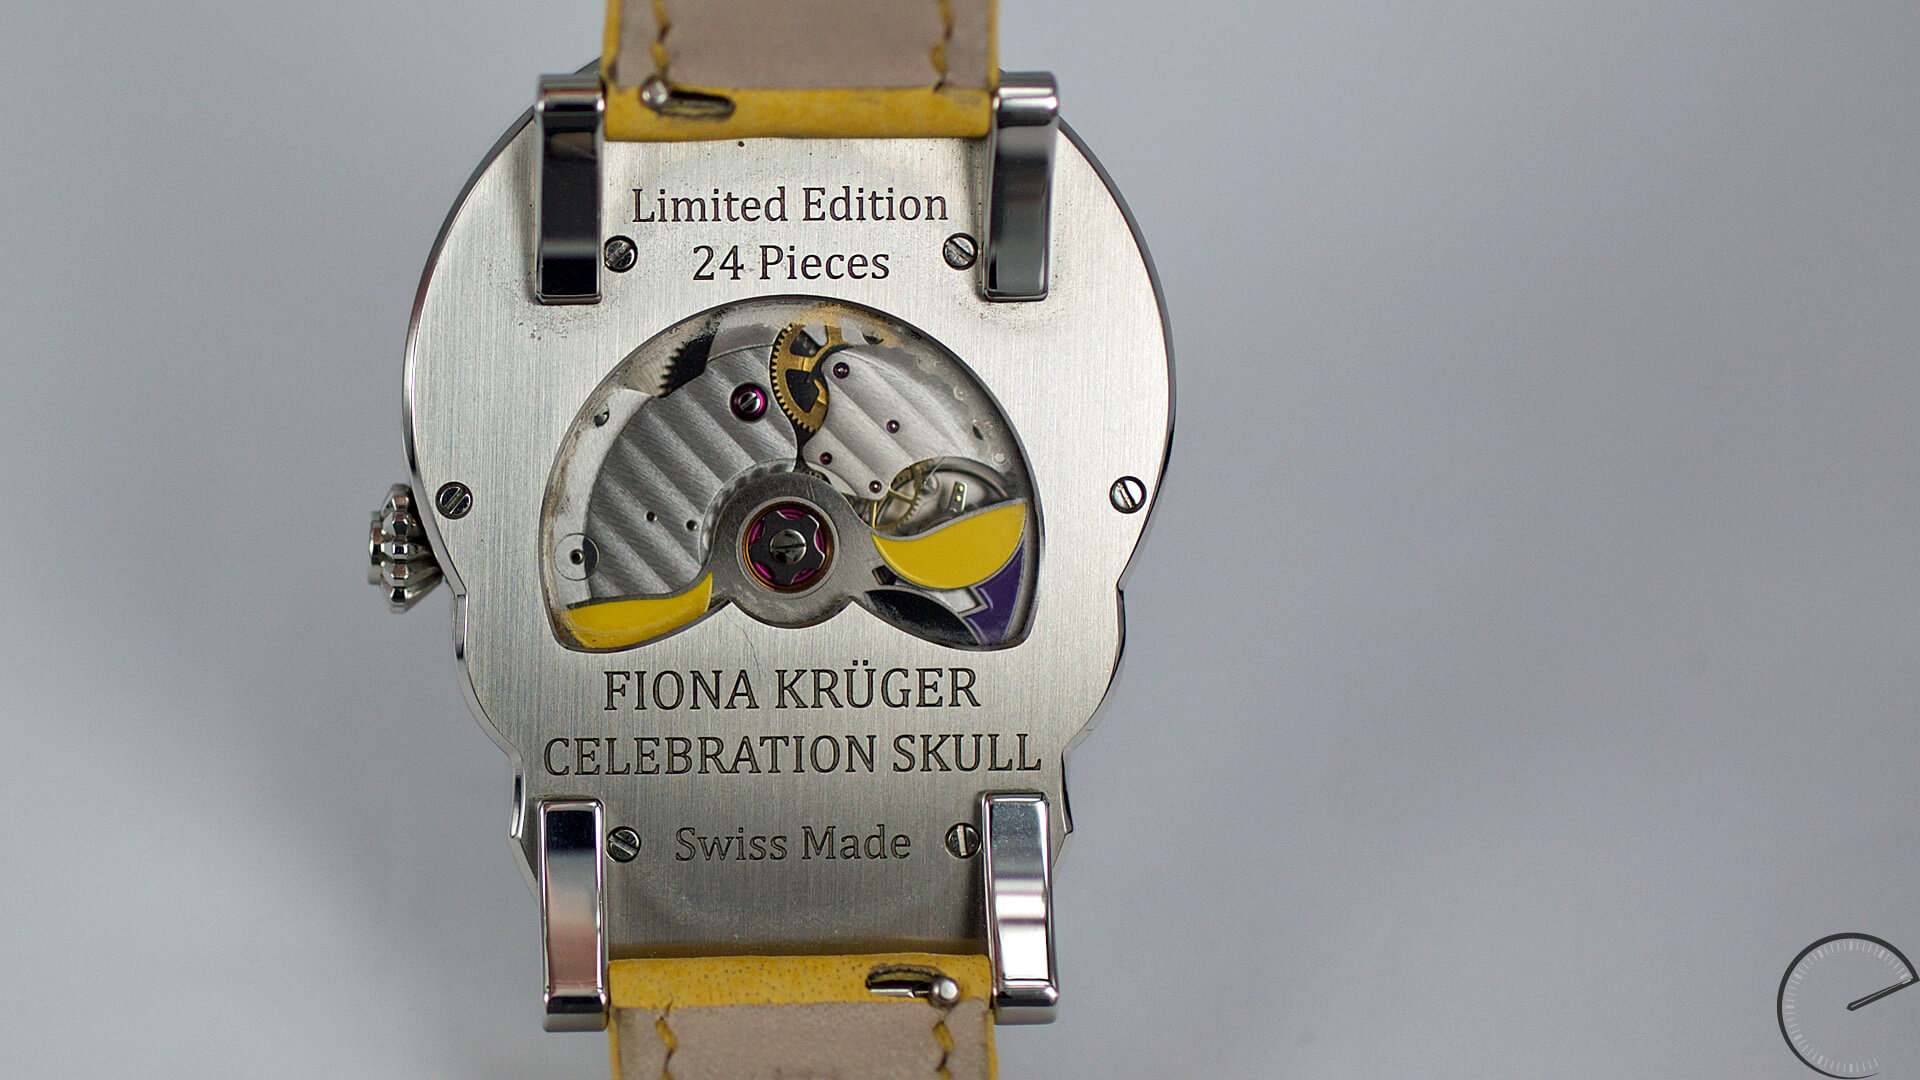 Images for profile feature on watch designer Fiona Kruger